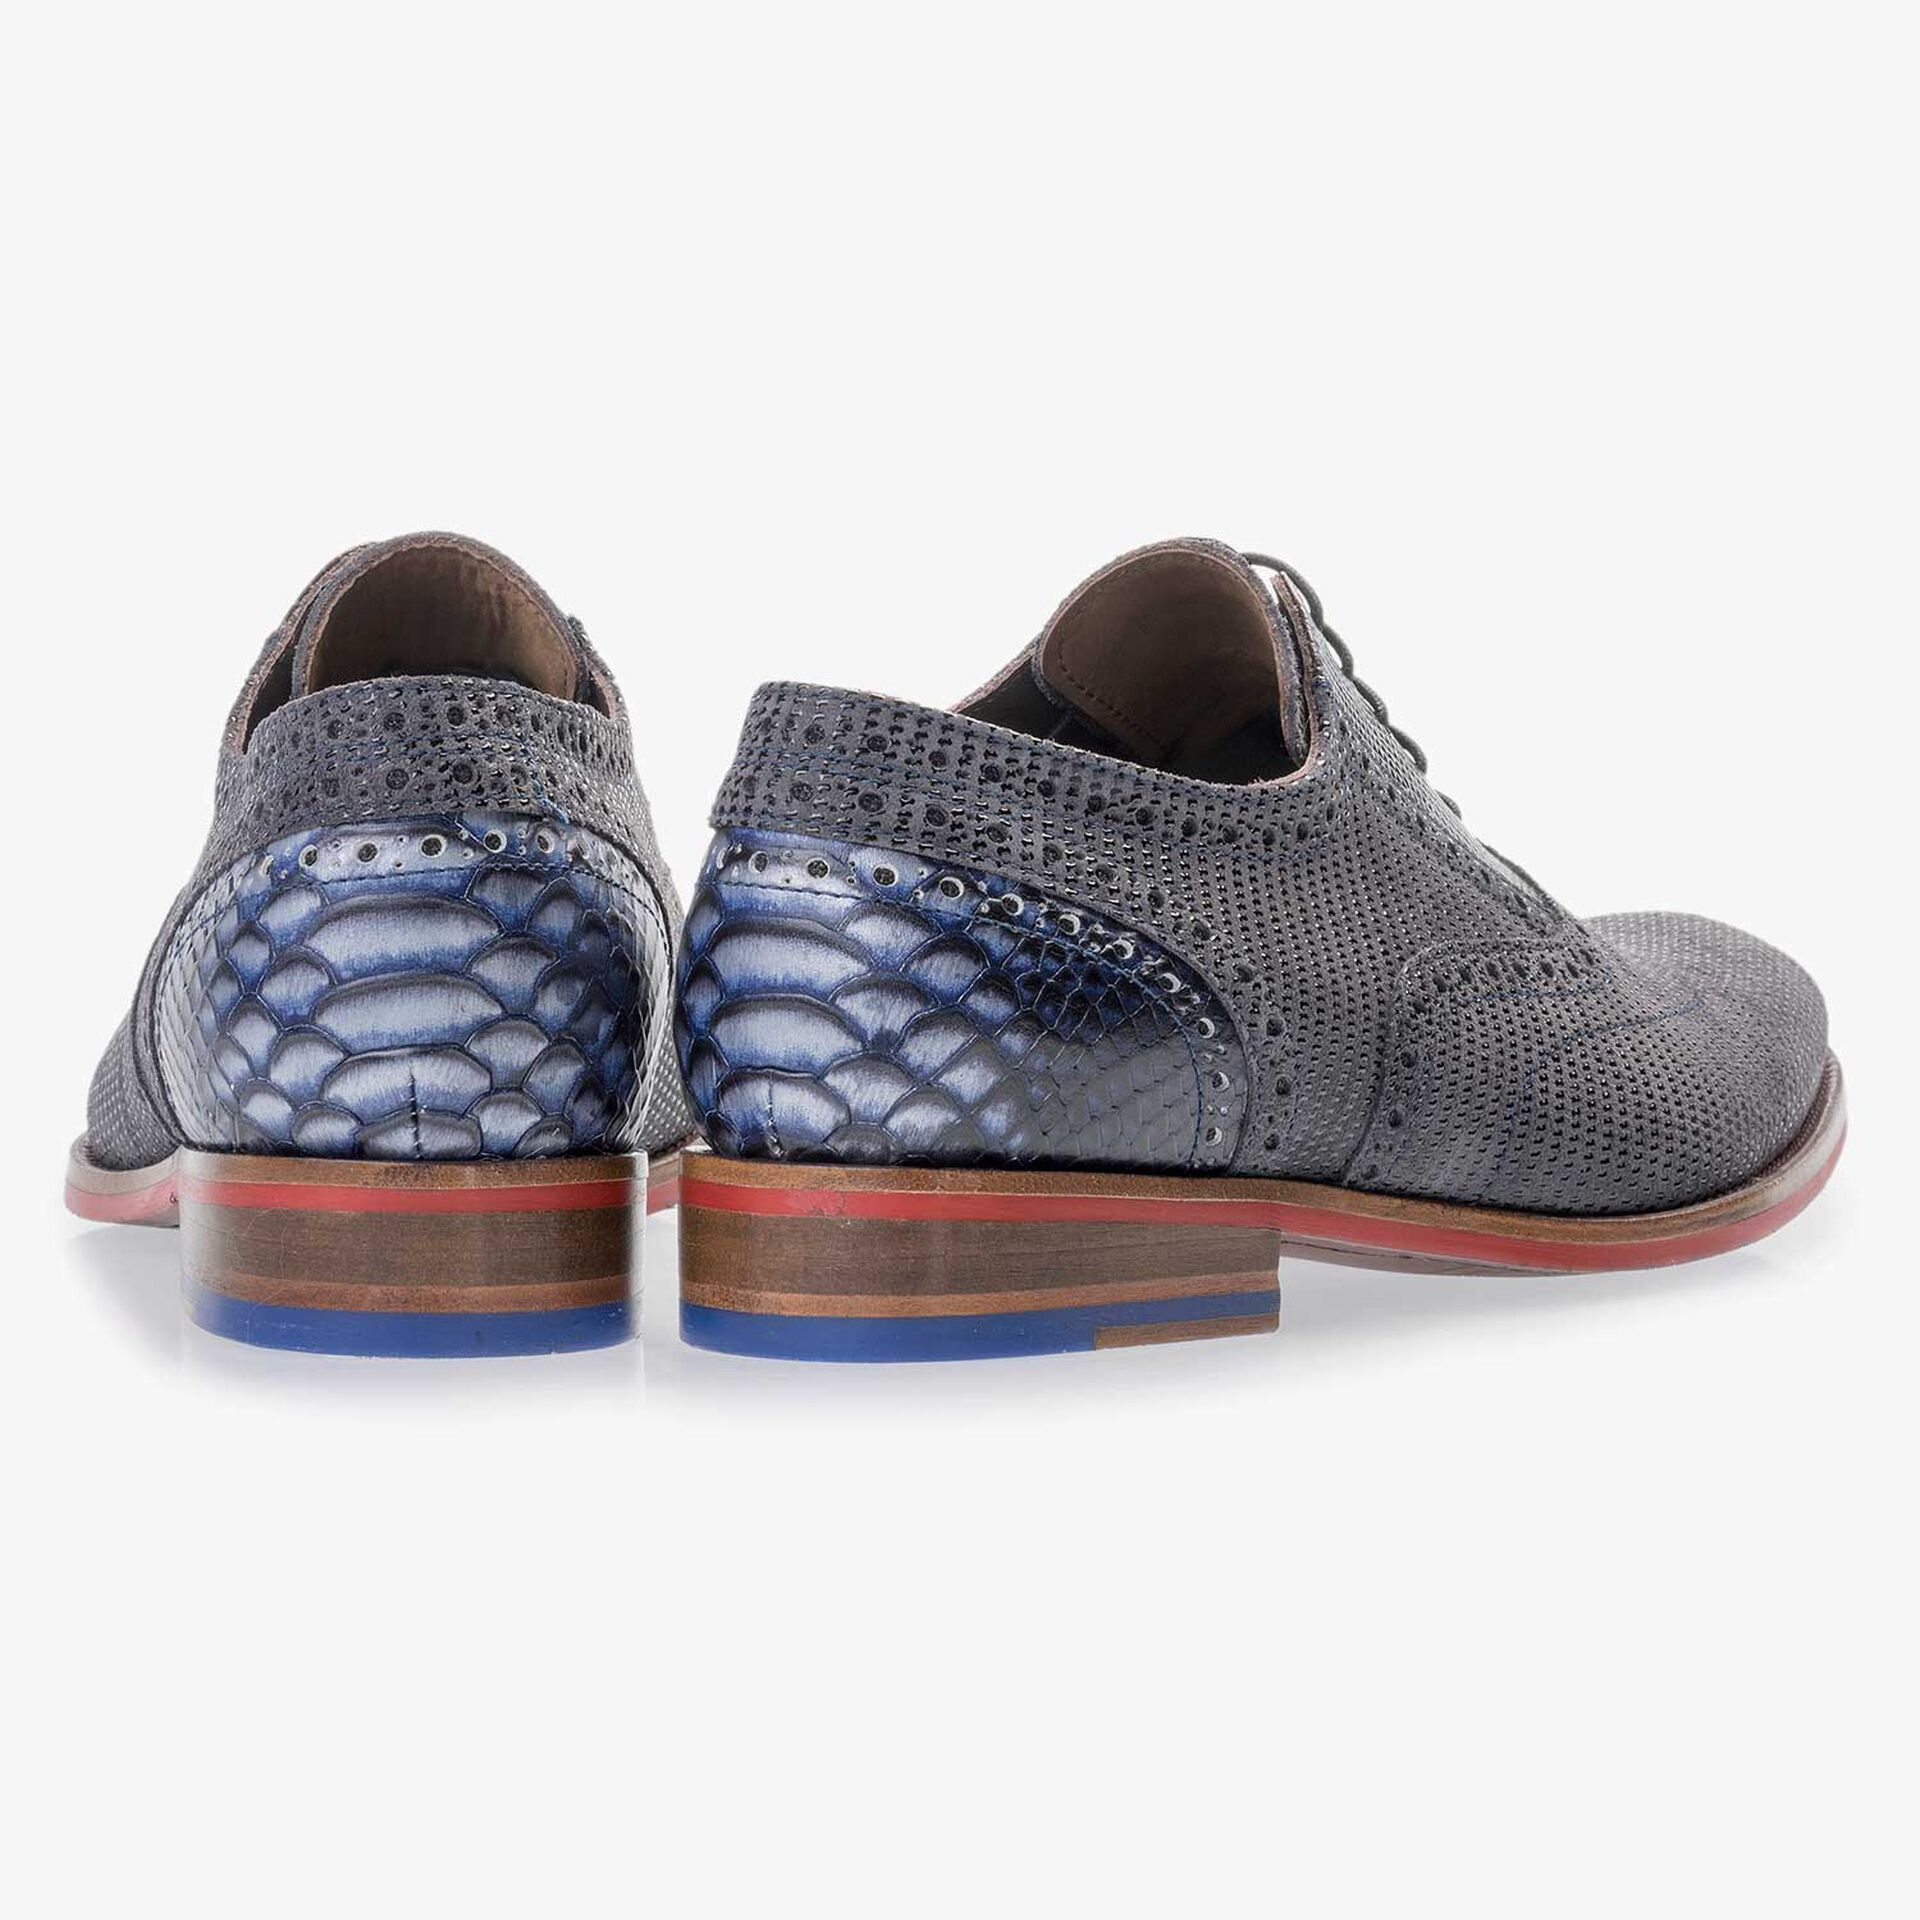 Dark grey patterned lace shoe made of suede leather